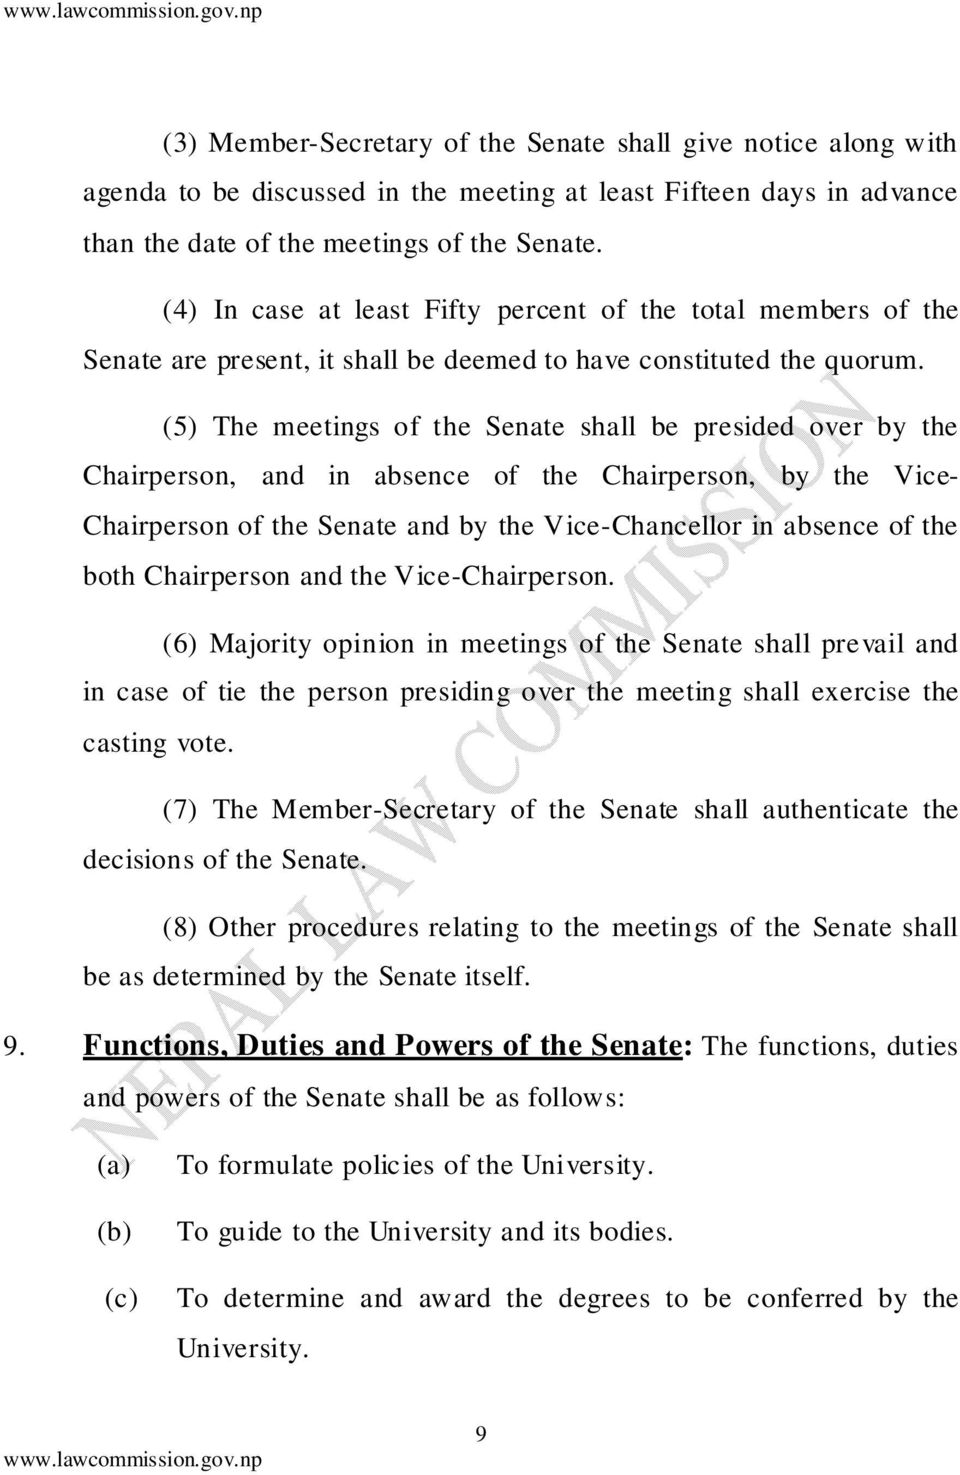 (5) The meetings of the Senate shall be presided over by the Chairperson, and in absence of the Chairperson, by the Vice- Chairperson of the Senate and by the Vice-Chancellor in absence of the both